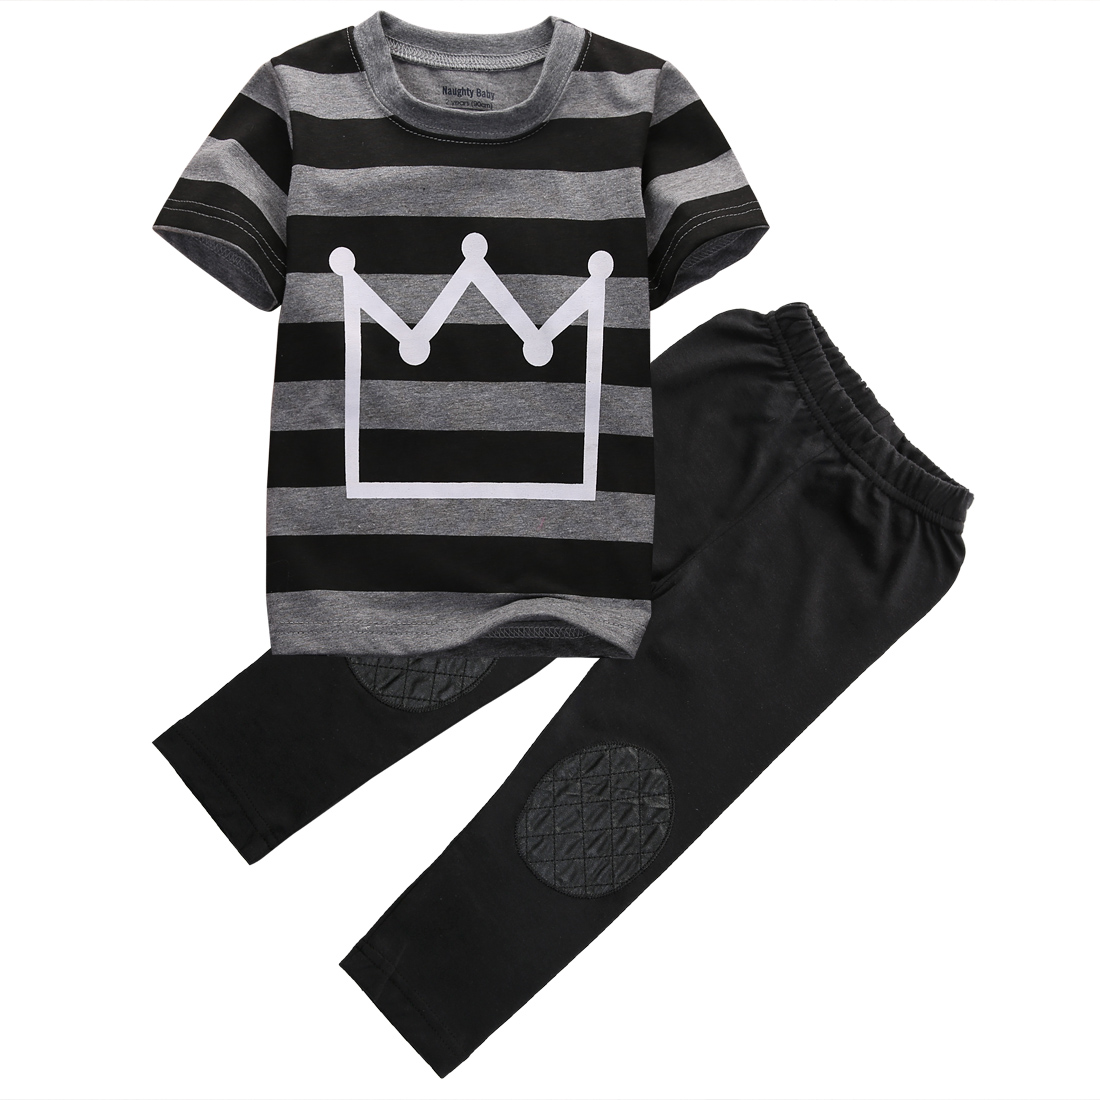 Fashion-Baby-Boys-Clothes-2016-New-Kids-Boy-Crown-Top-Shirt-Striped-T-Shirt-and-Pant-2pcs-Outfit-Children-Set-3